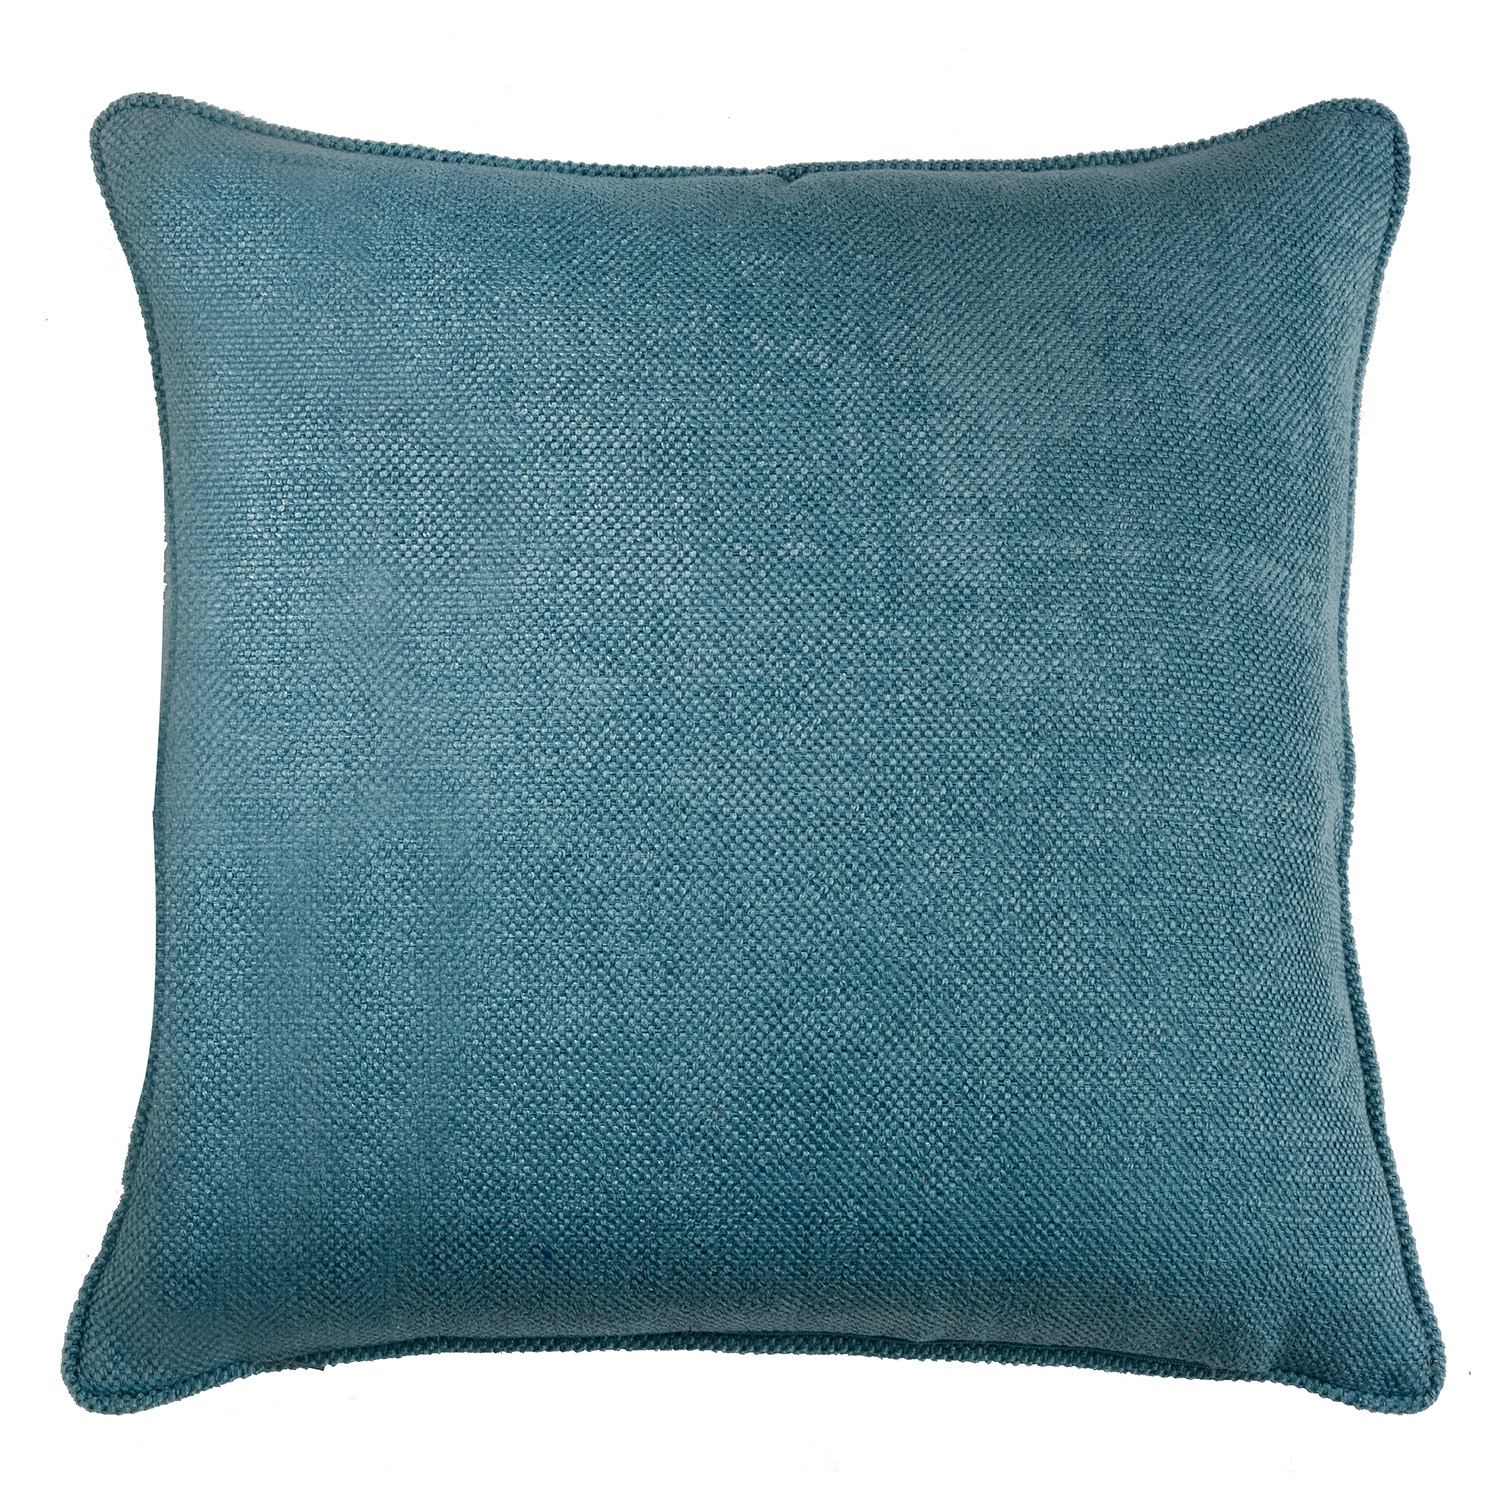 Buxton Teal Filled Square Cushion